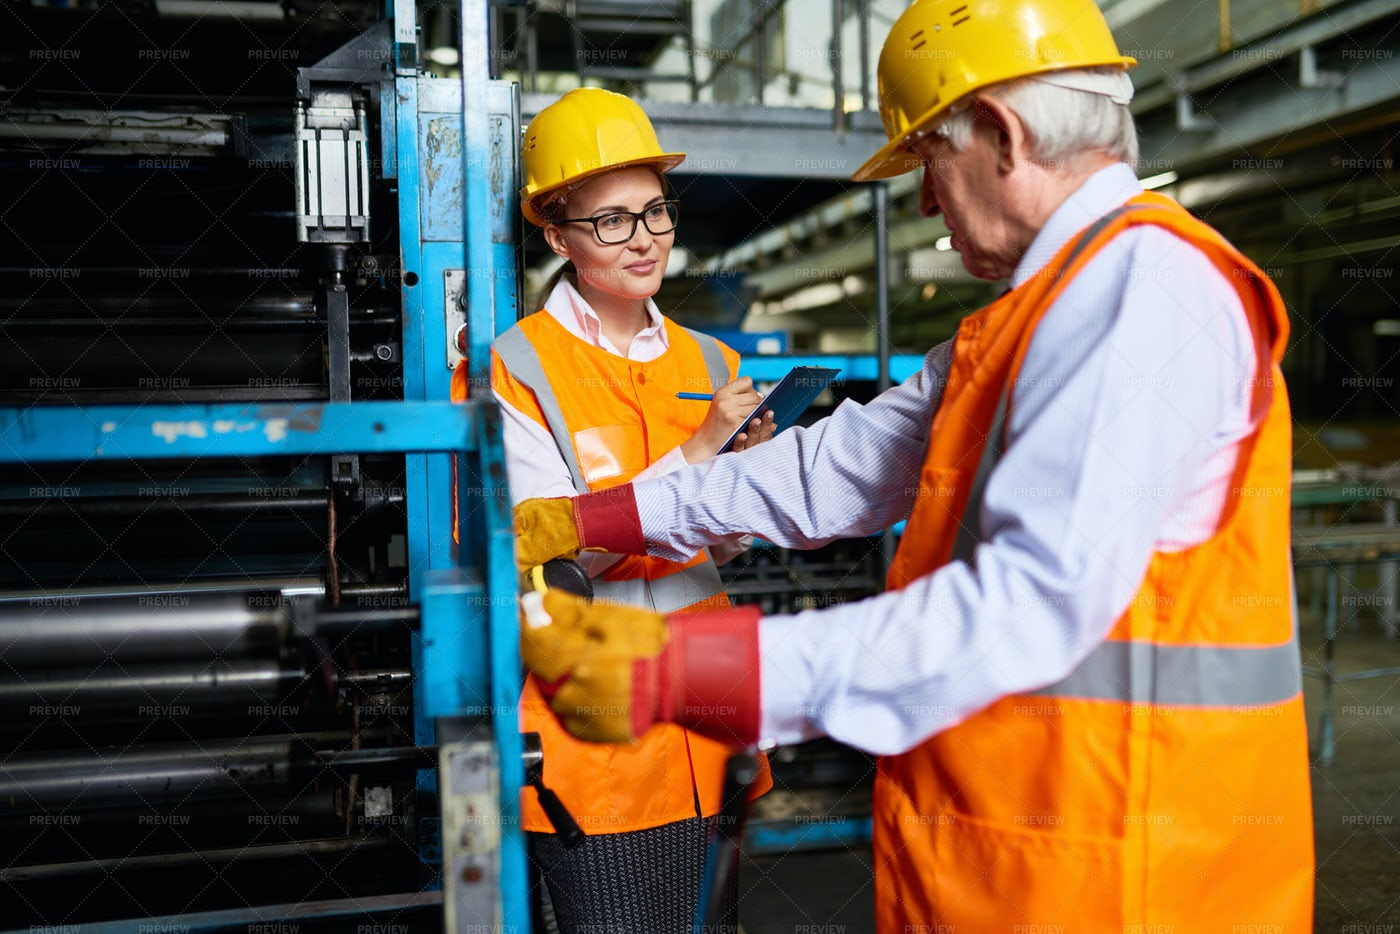 Workers In Factory Workshop: Stock Photos